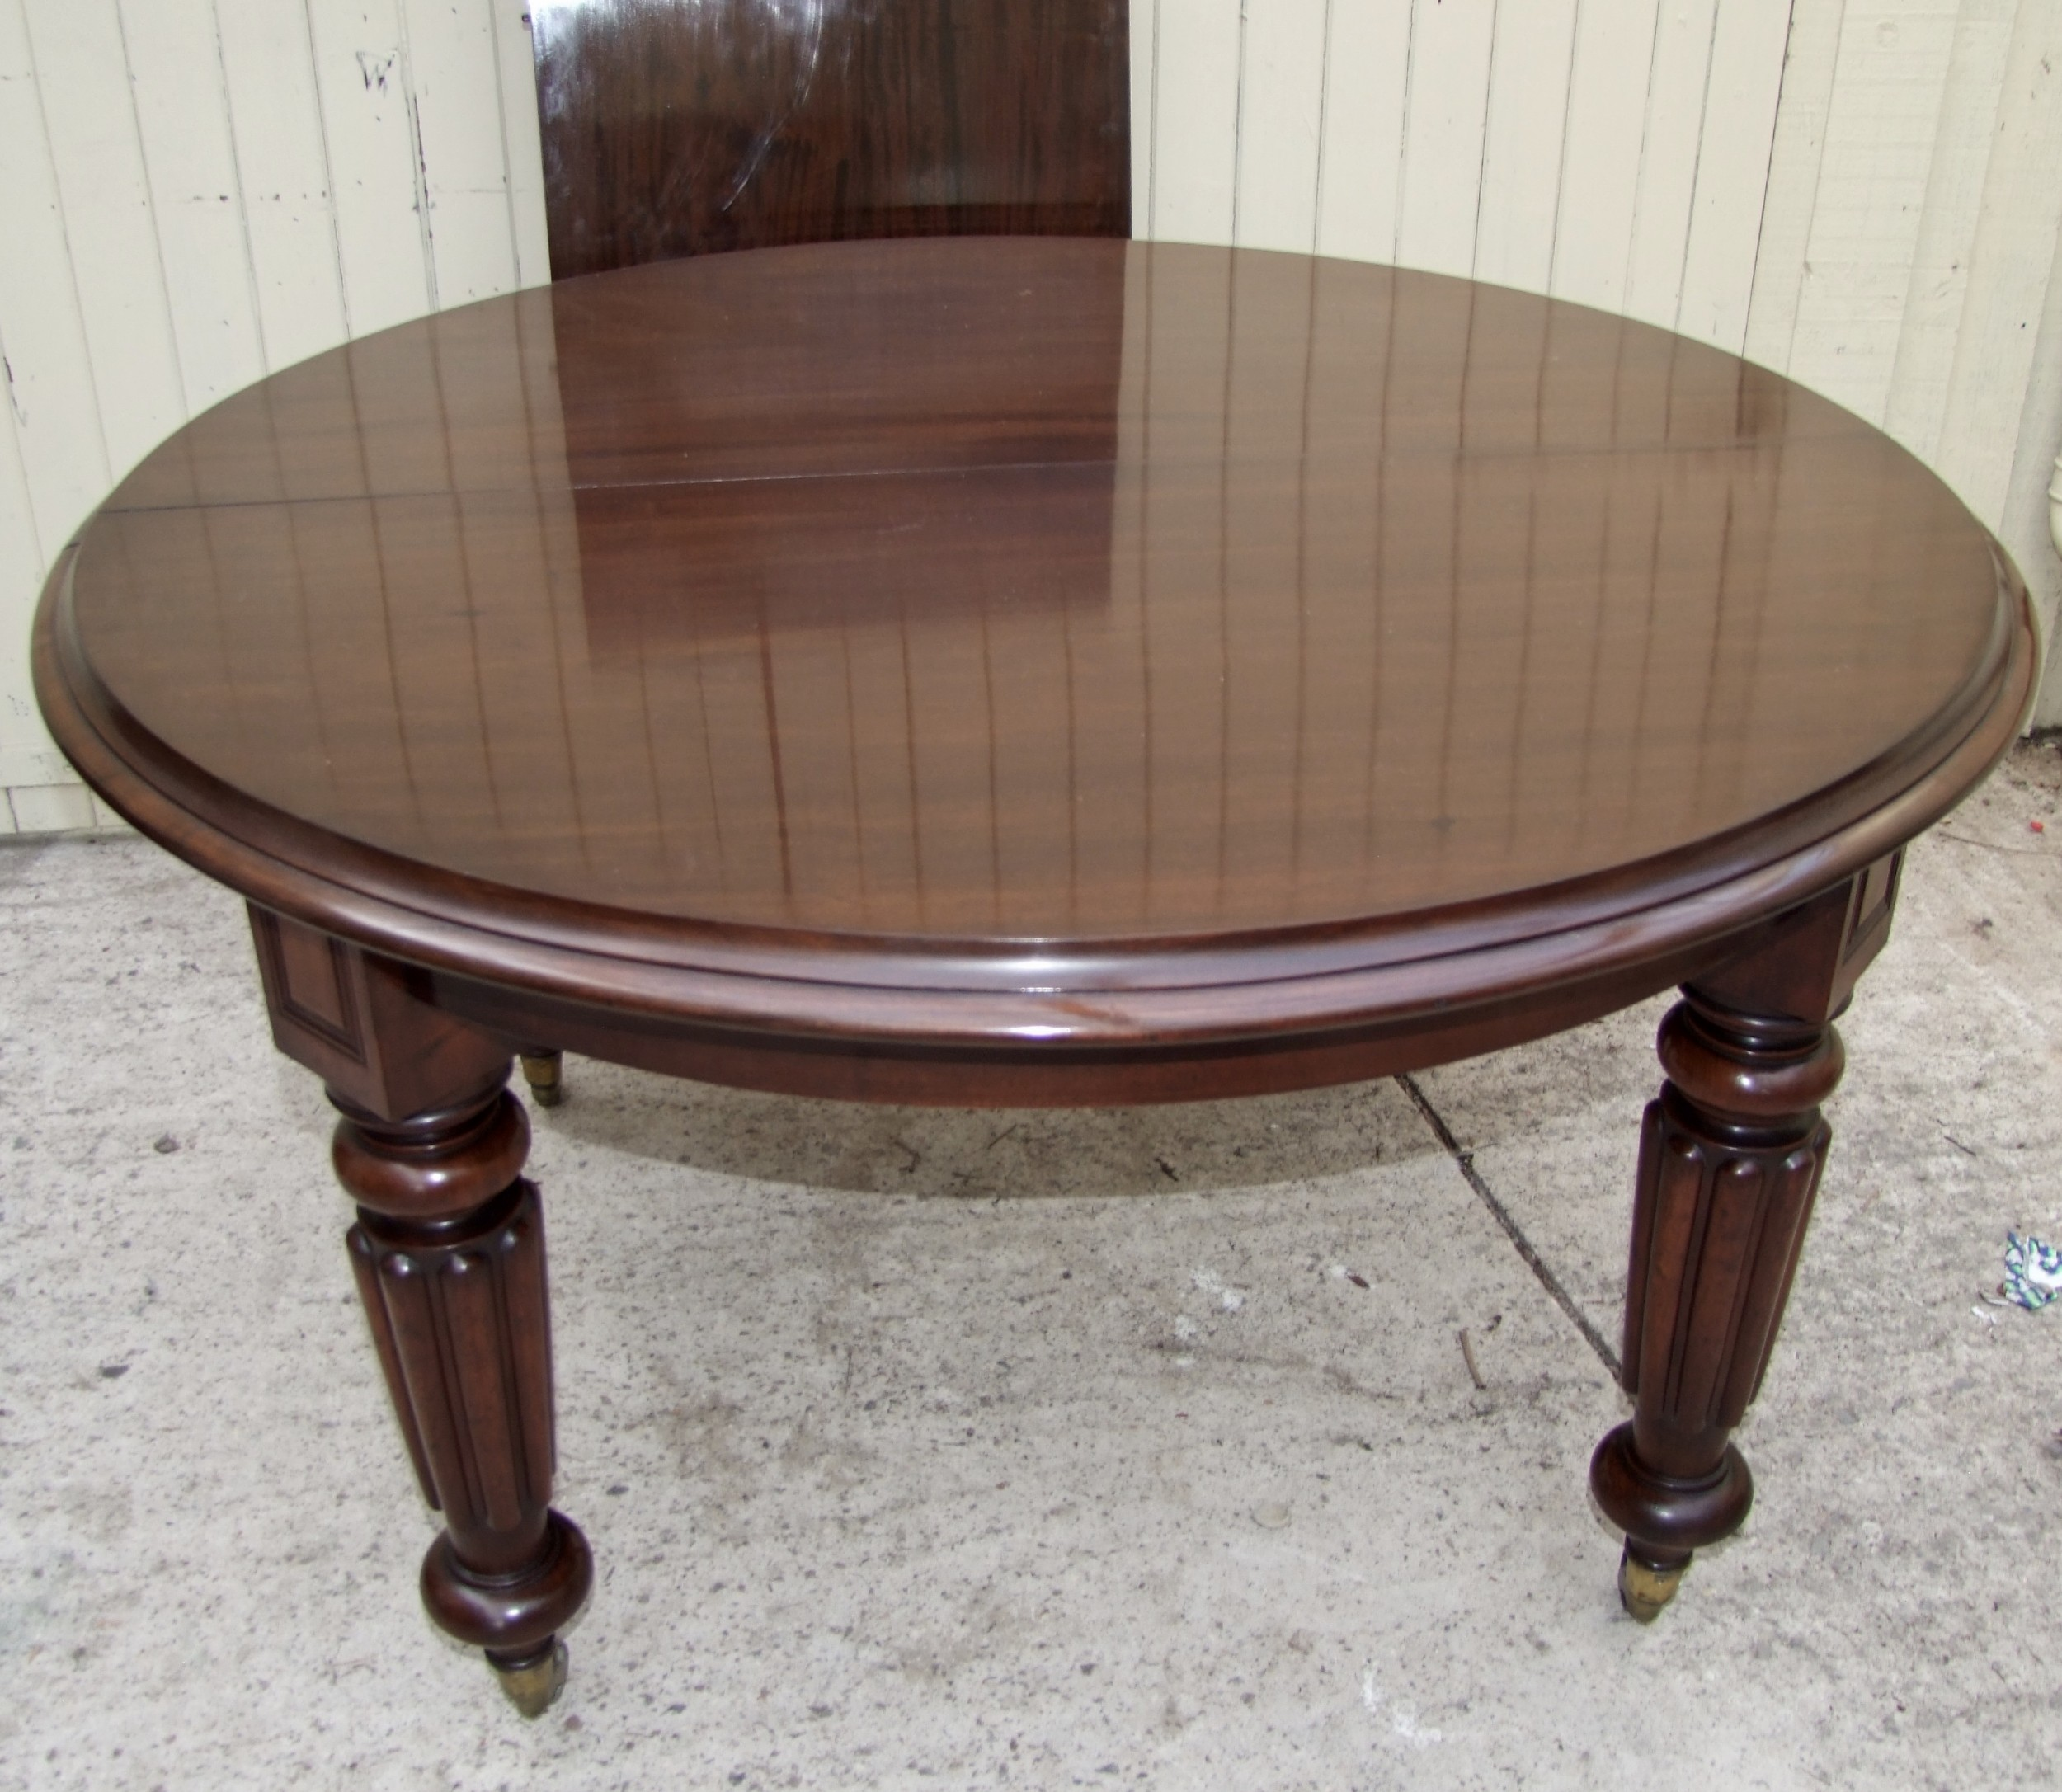 all original beautiful quality william iv circular extending table in mahogany with one leaf